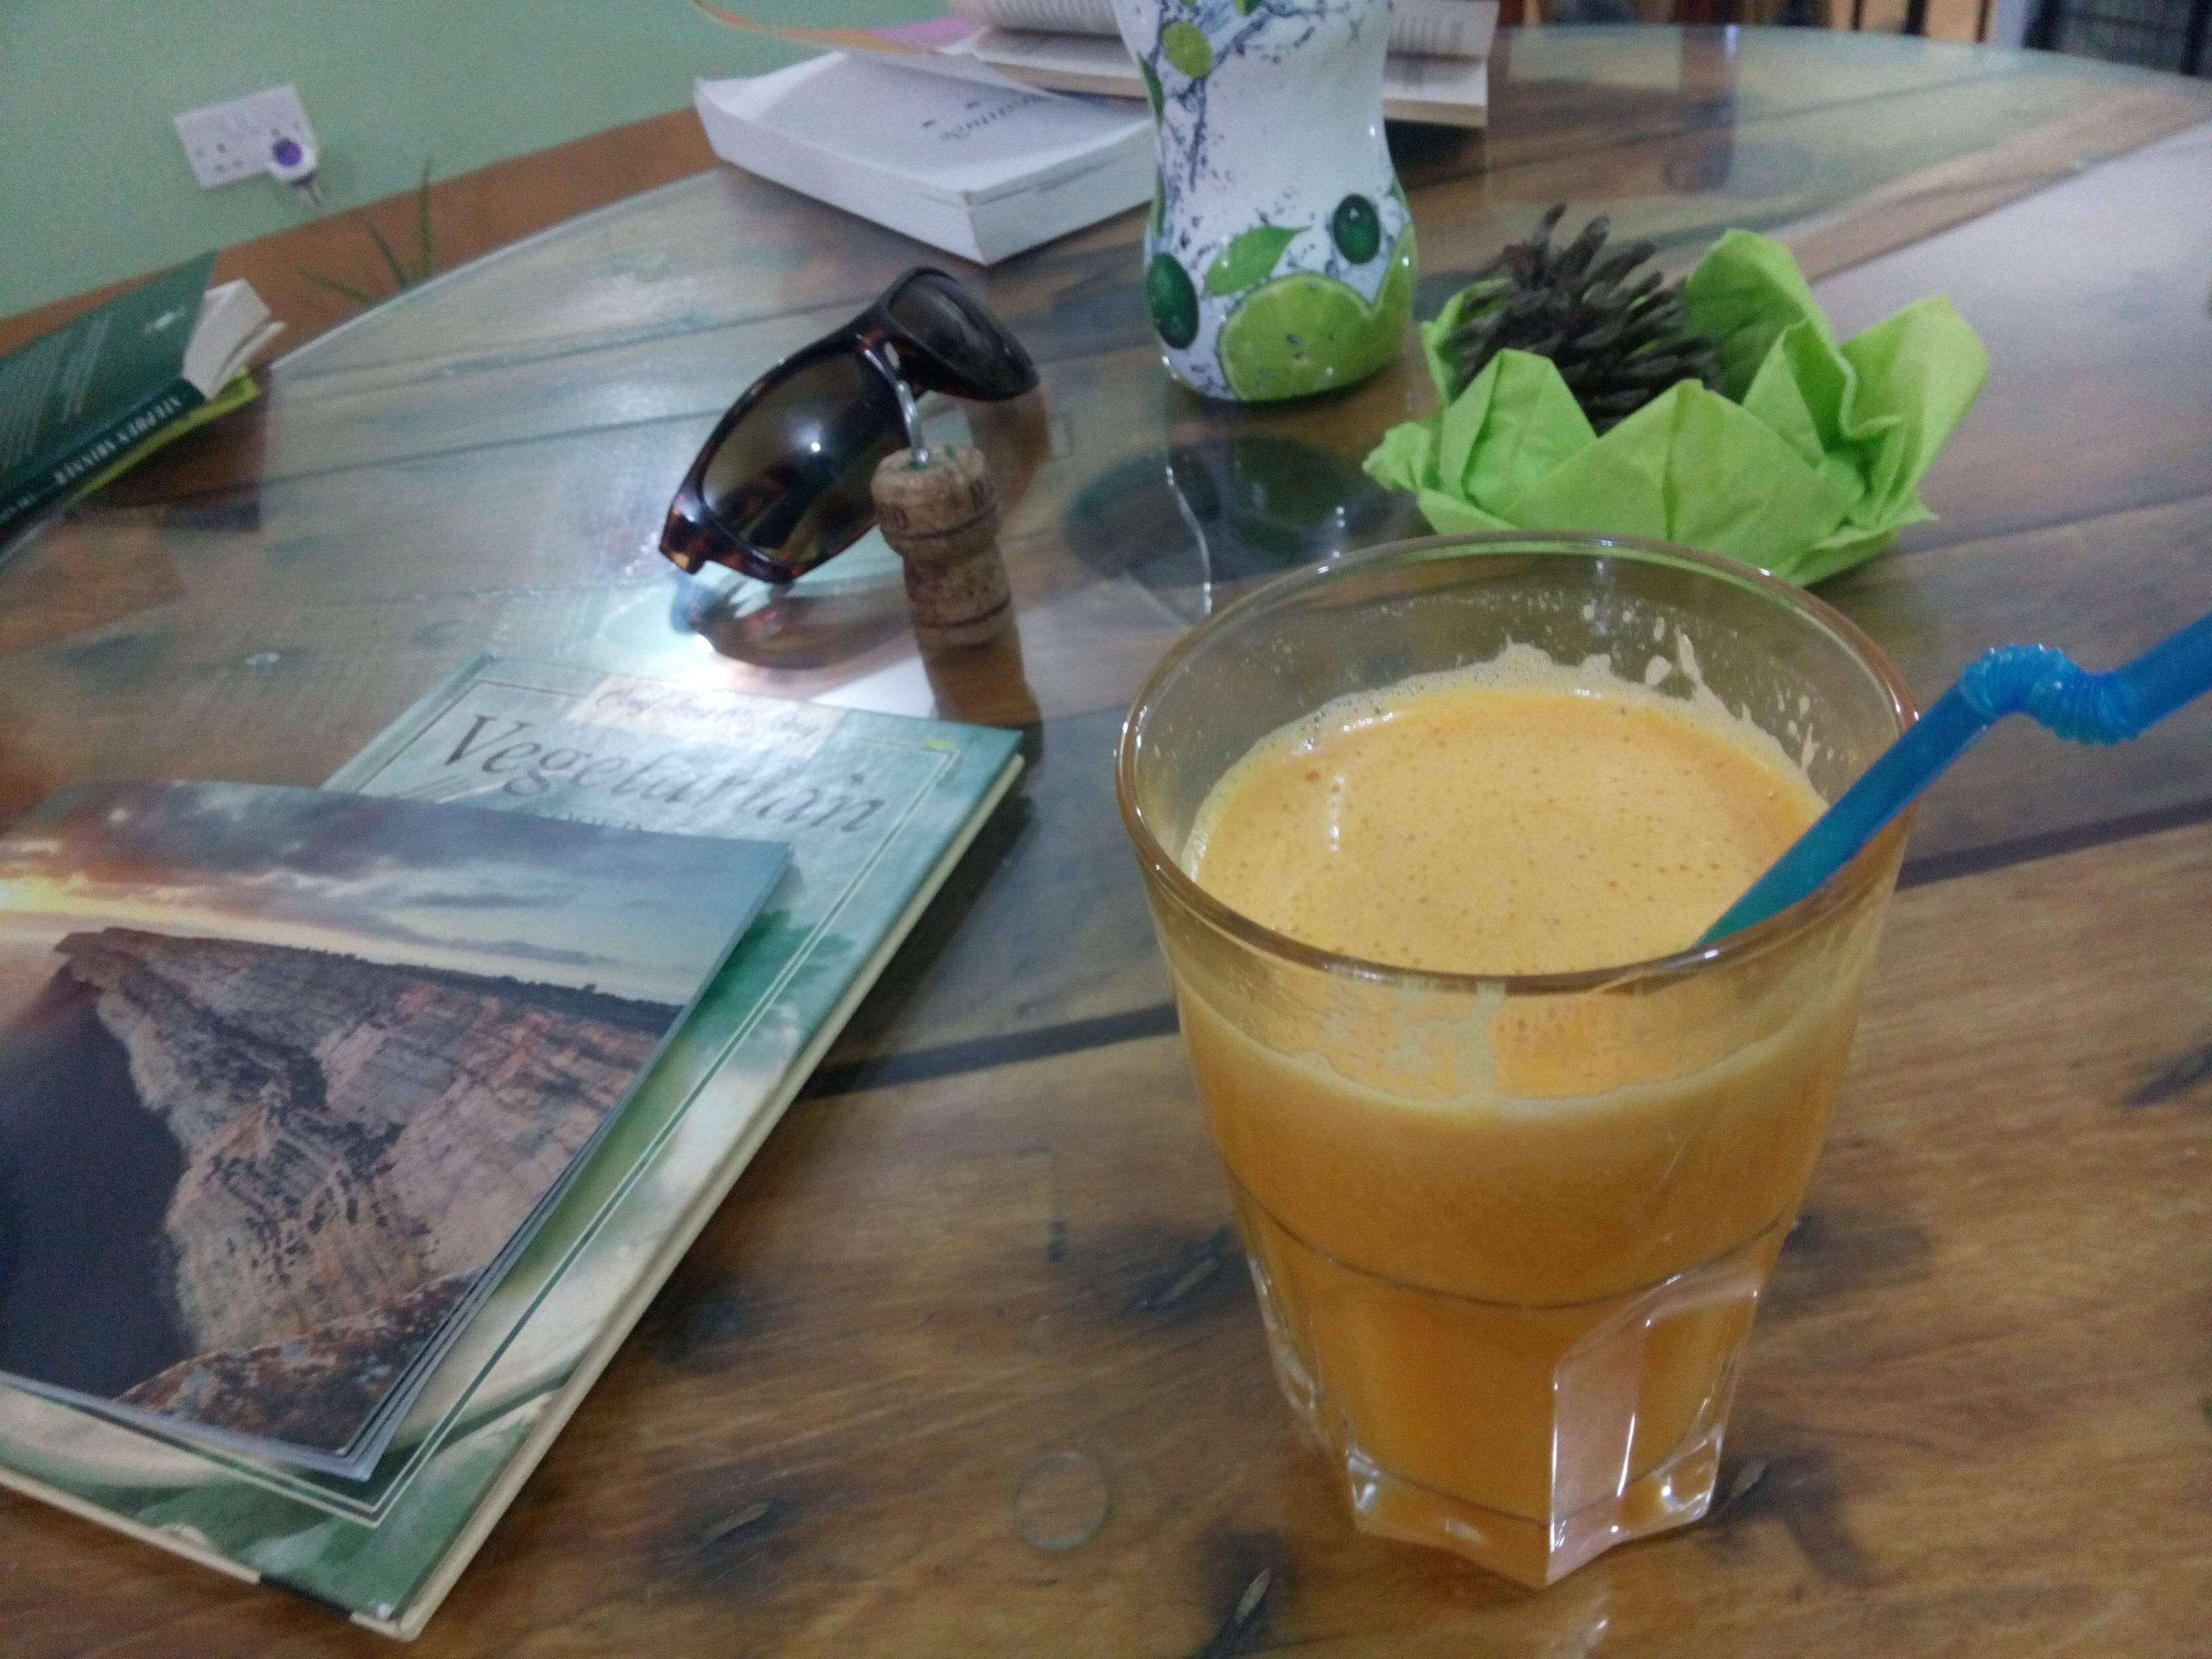 An orange smoothie in a glass on a wooden table, beside a vegetarian cookbook